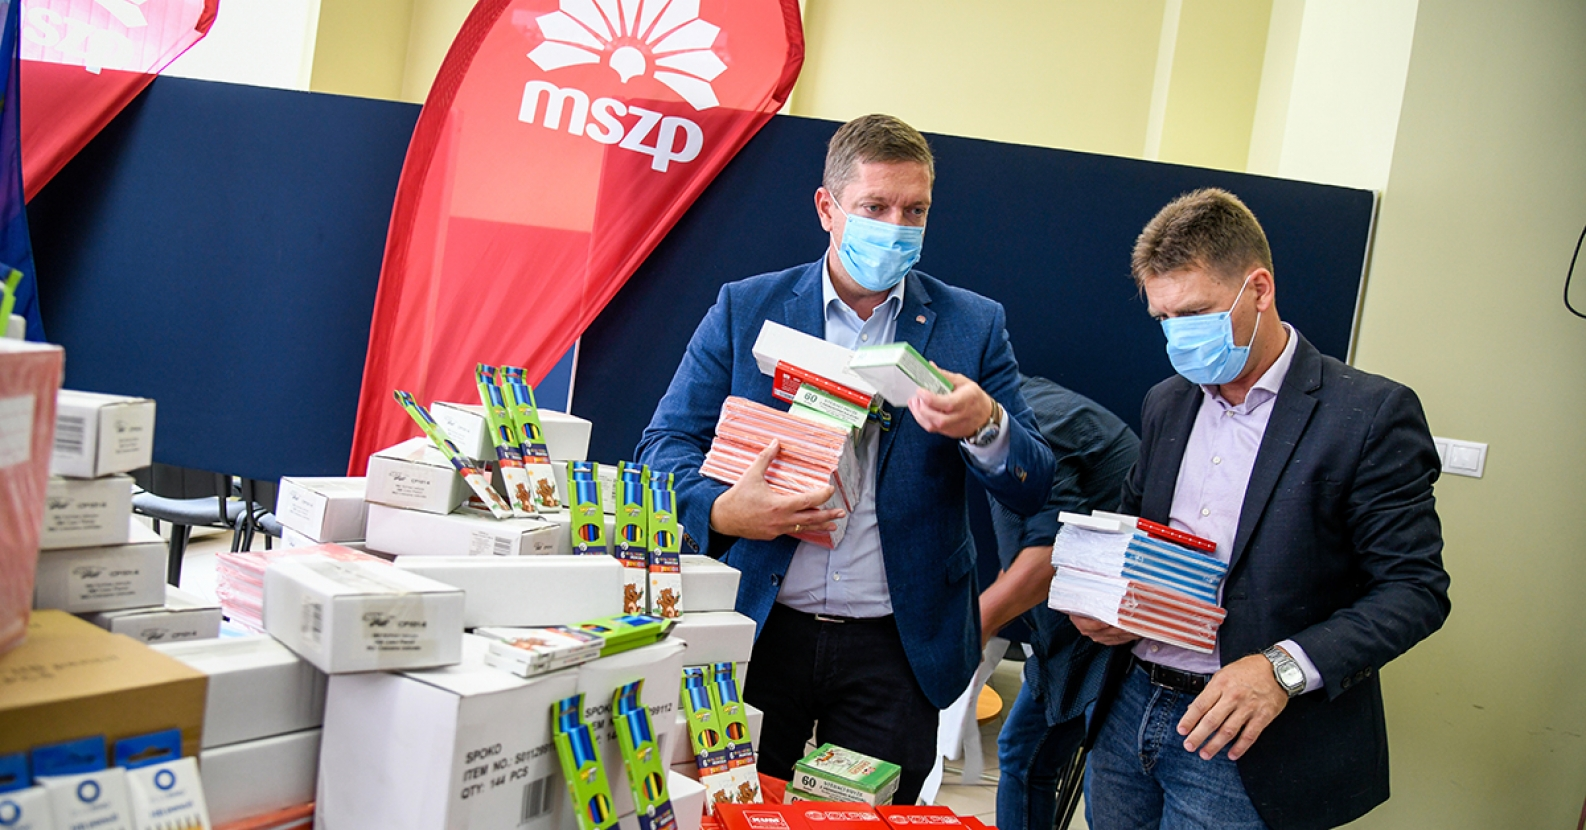 MSZP Donates School Supplies This Time